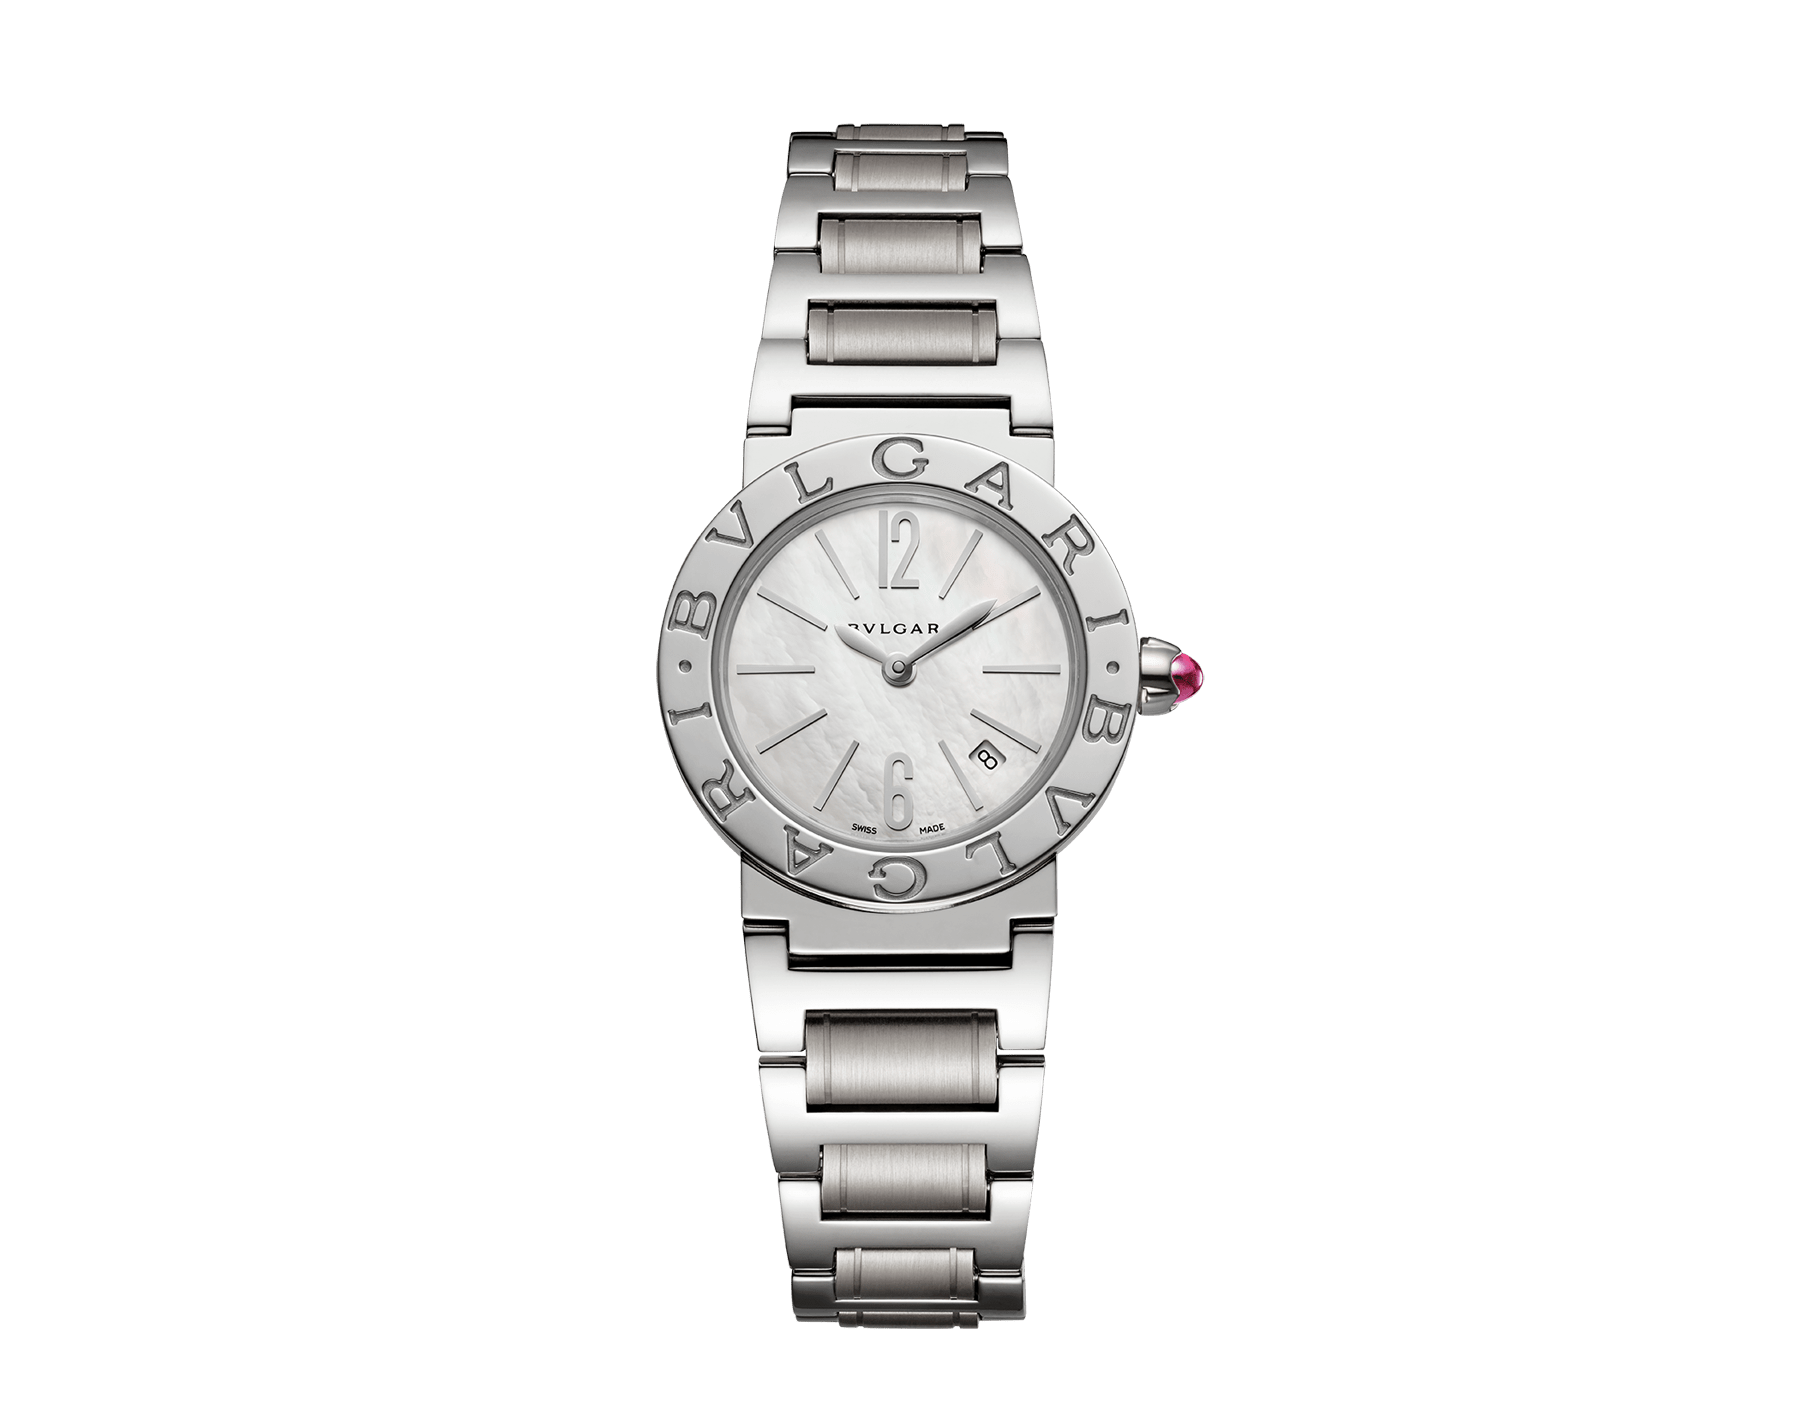 BVLGARI BVLGARI watch in stainless steel case and bracelet with white mother-of-pearl dial and date indication. Small model 101885 image 1